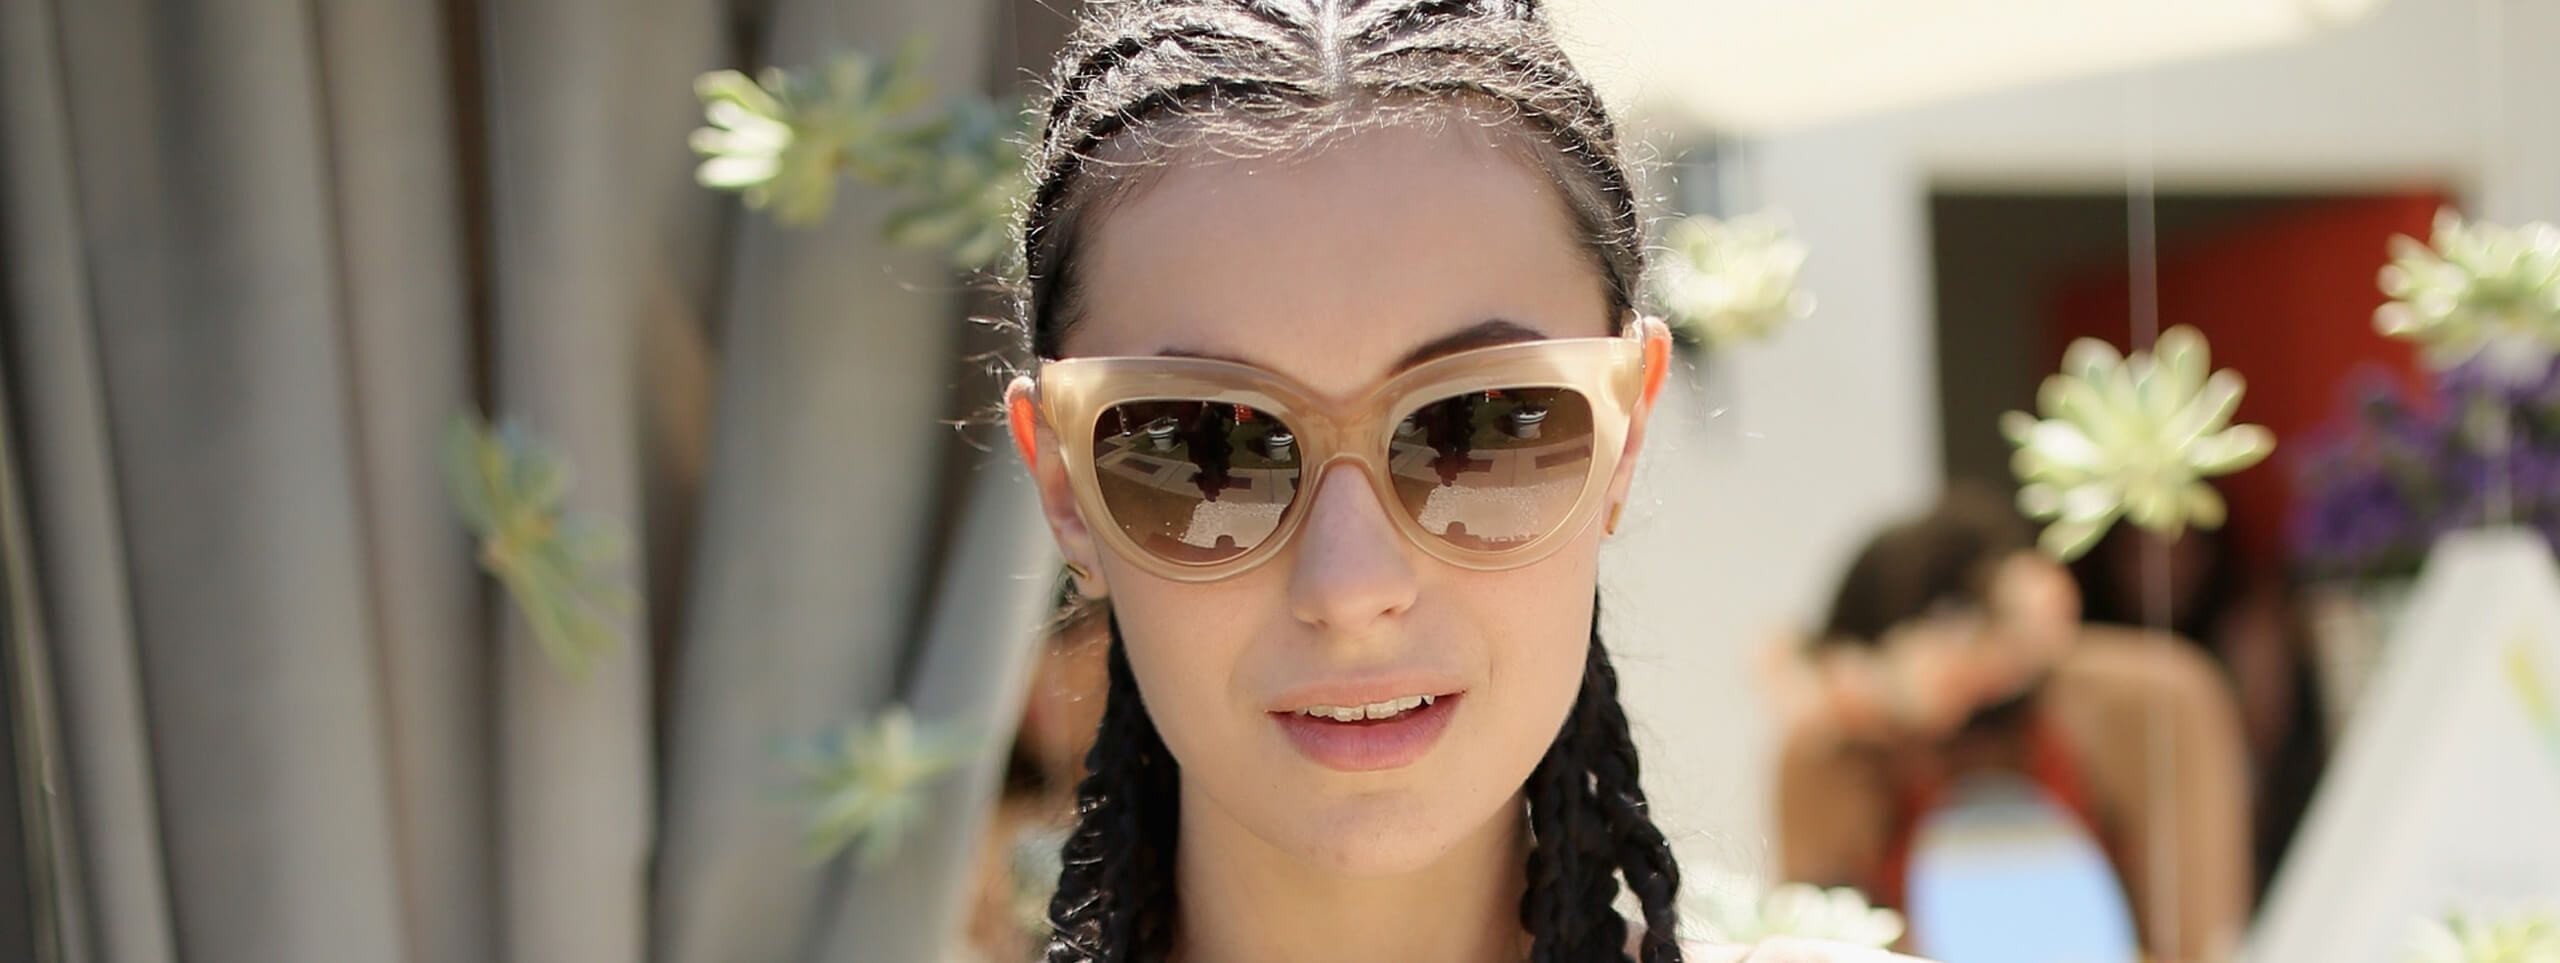 Model with braided hairstyle and sunglasses